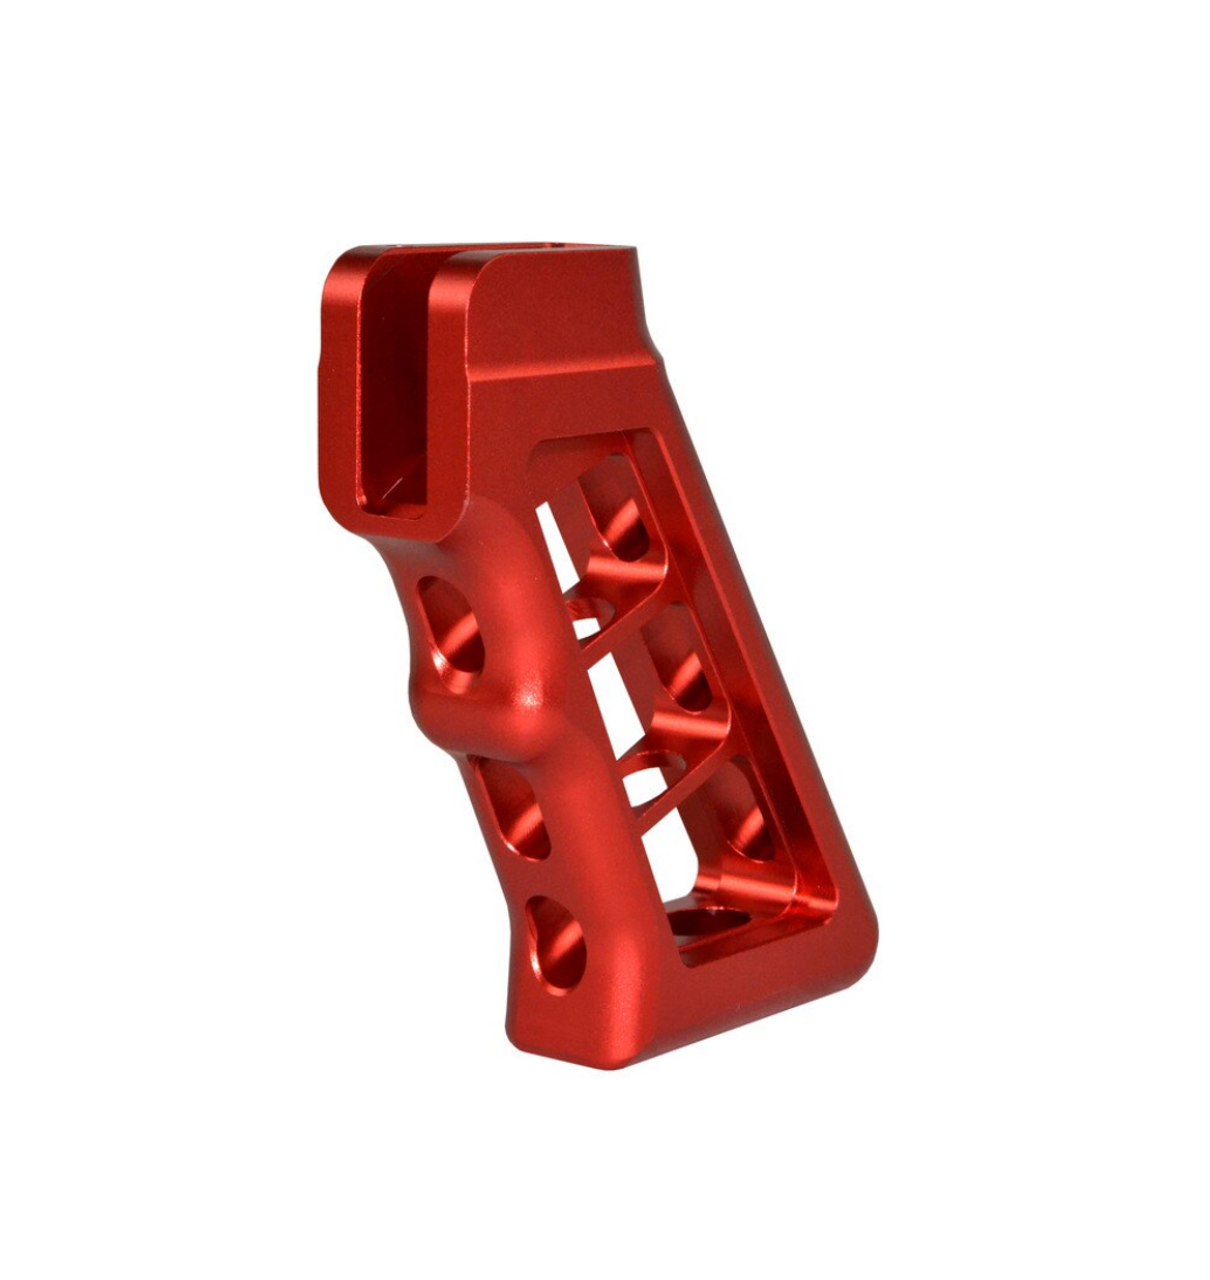 Skeletonized Rear Pistol Grip V1 For Ar-15, 308, LR-308